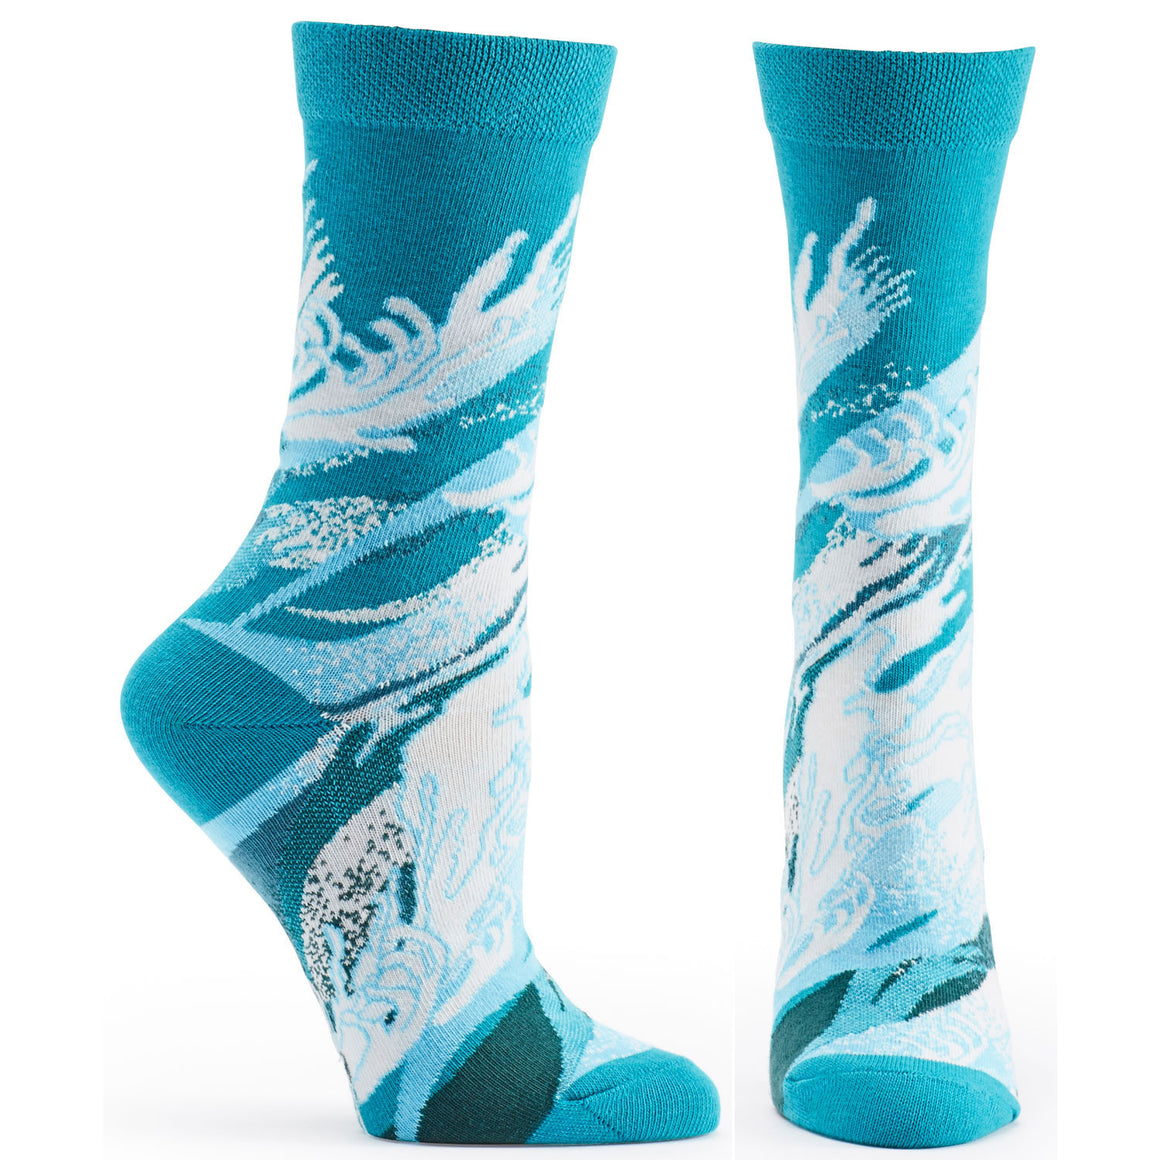 Both feet of Four Elements Water Sock in Blue size 9-11 womens novelty crew from ozone socks